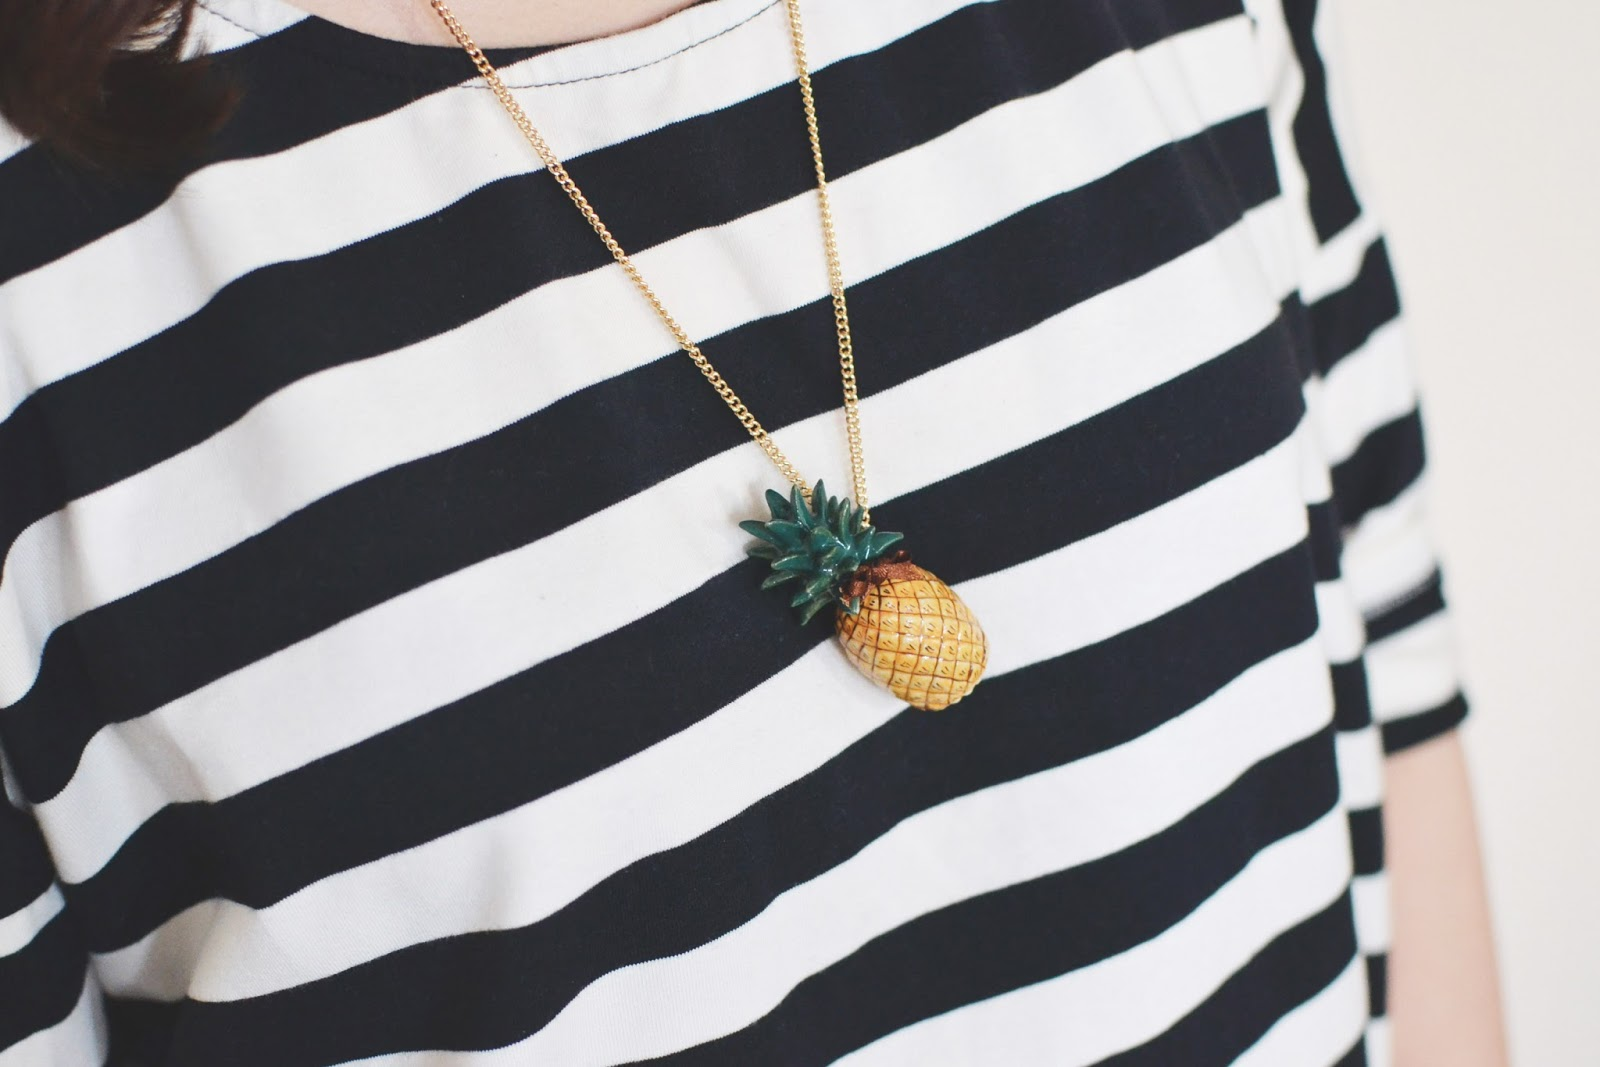 quirky jewellery, pineapple necklace, pineapple fashion trend